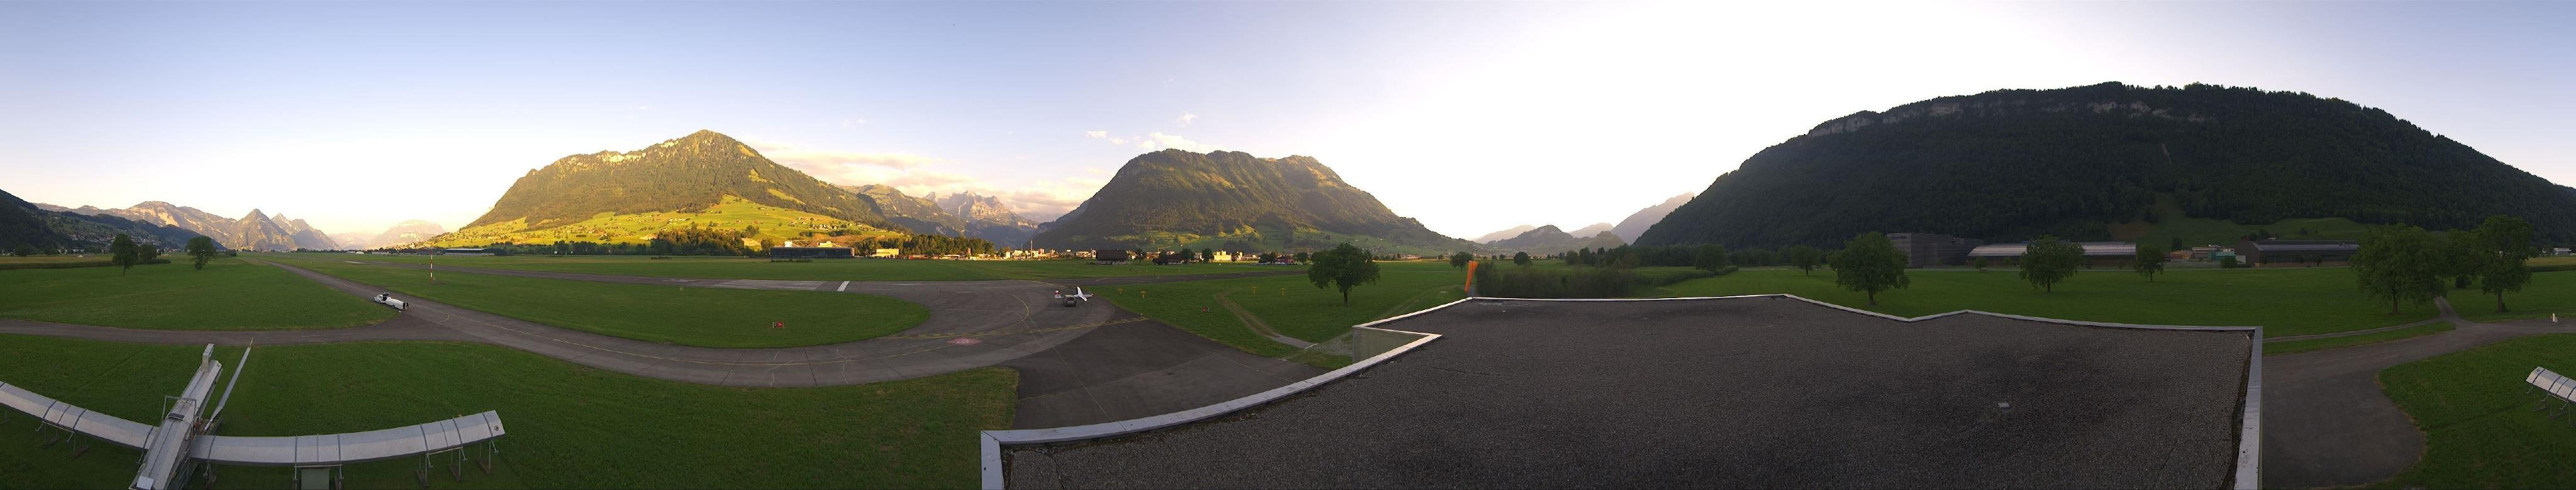 Stans: Buochs Airport